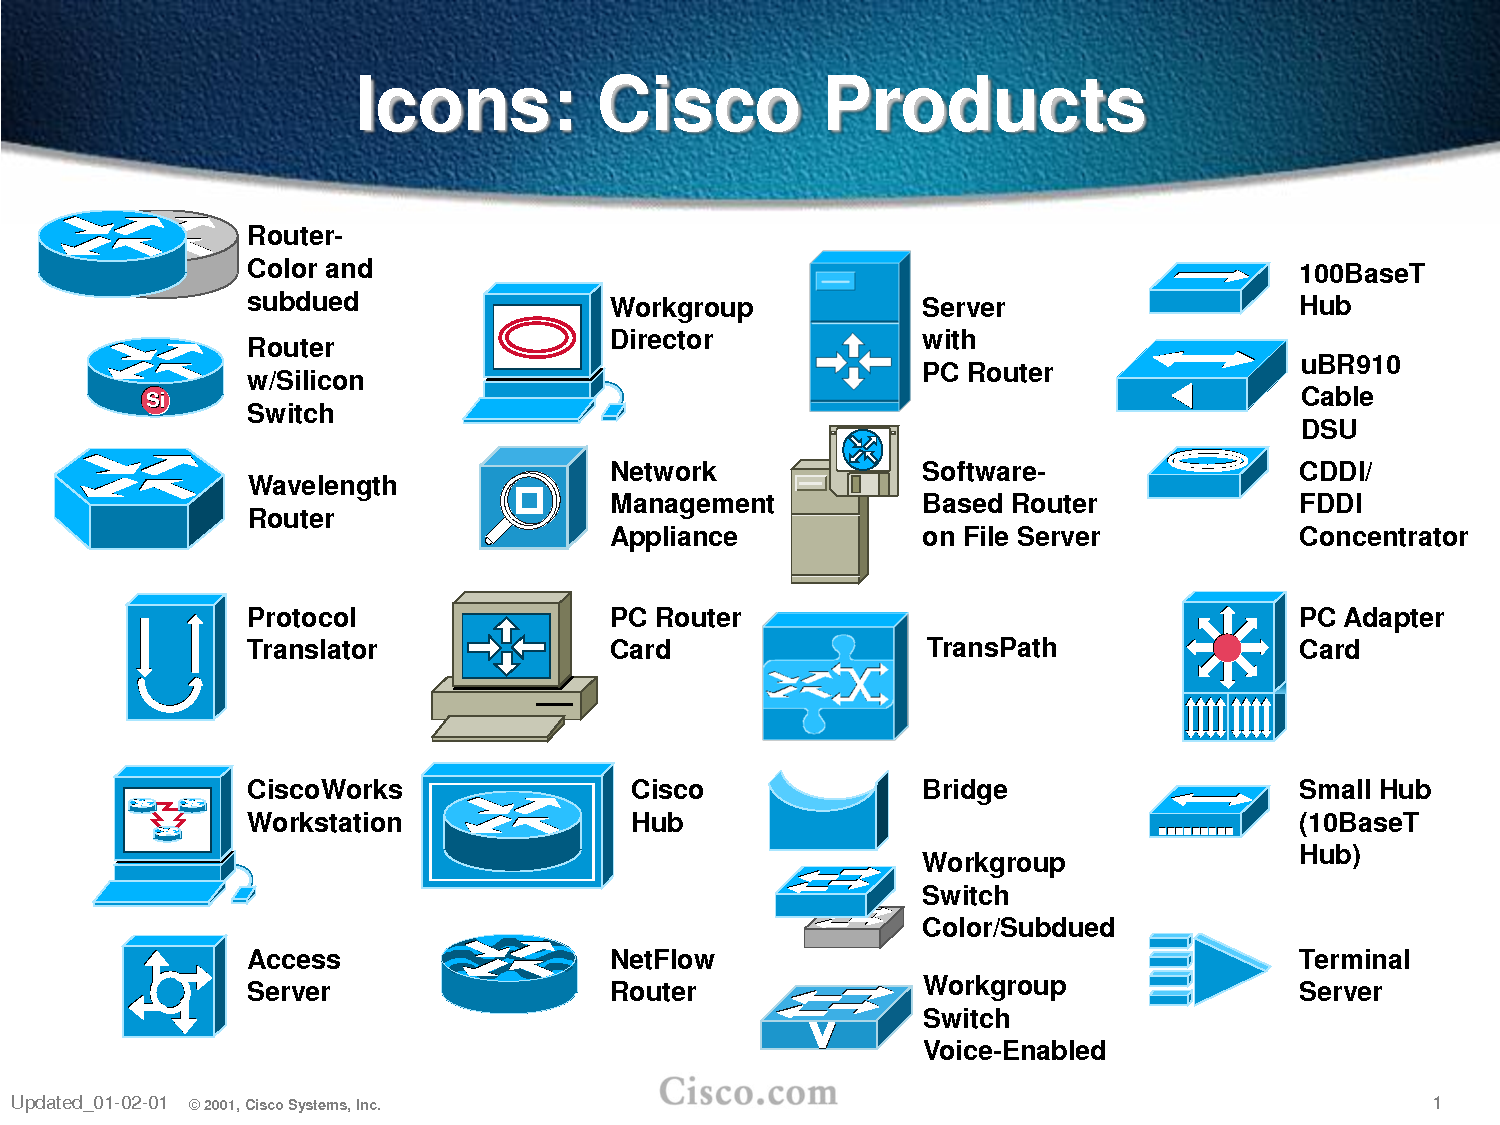 8 Cisco PowerPoint Icons Images